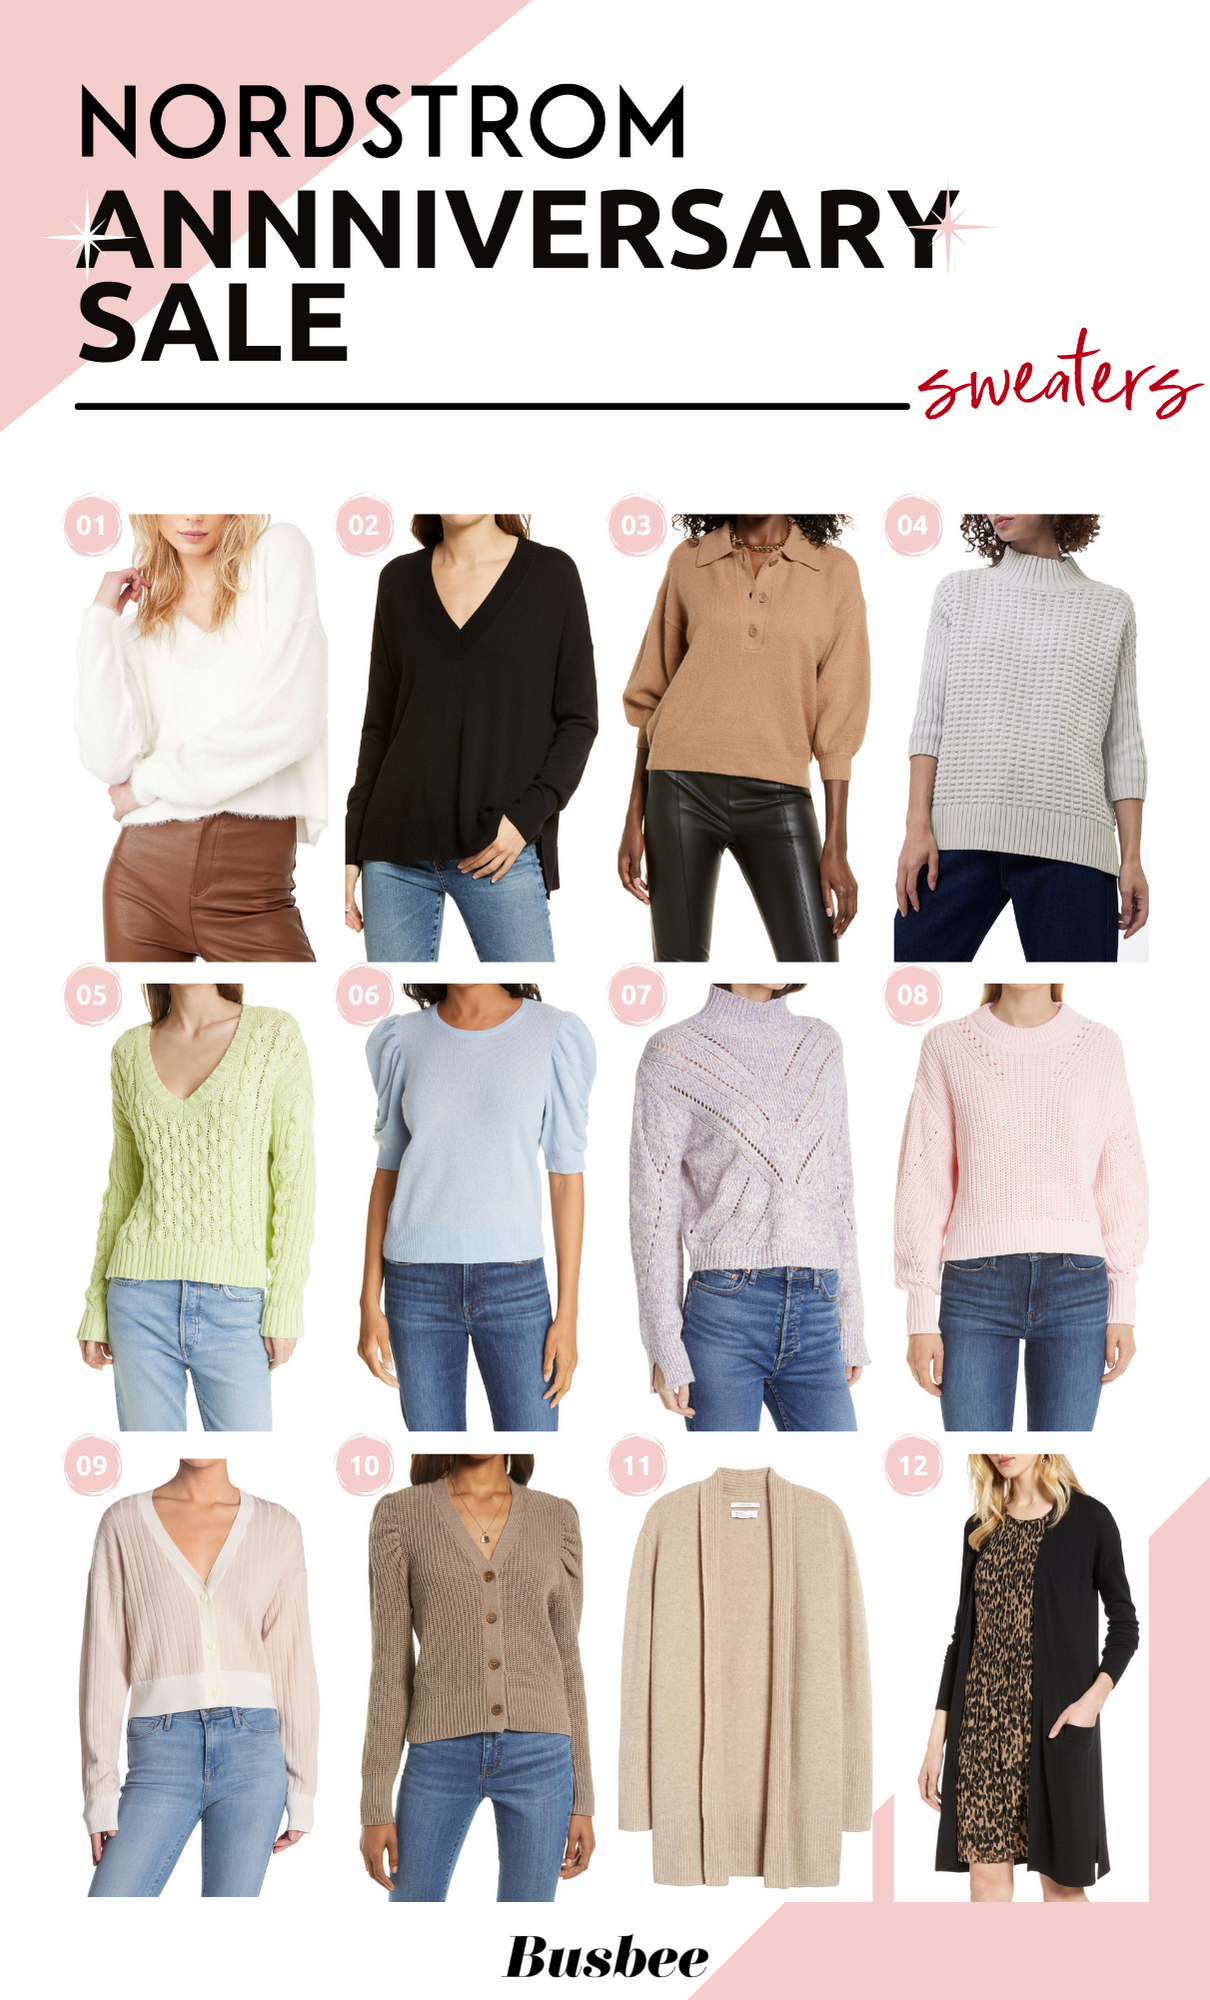 Nordstrom anniversary sale sweaters, nordstrom anniversary sale, nordstrom sale, nordstrom anniversary sale 2021, what to buy nordstrom sale, nsale, nsale 2021, best sweaters, affordable sweaters, designer sweaters, sweaters on sale, best sweaters on sale